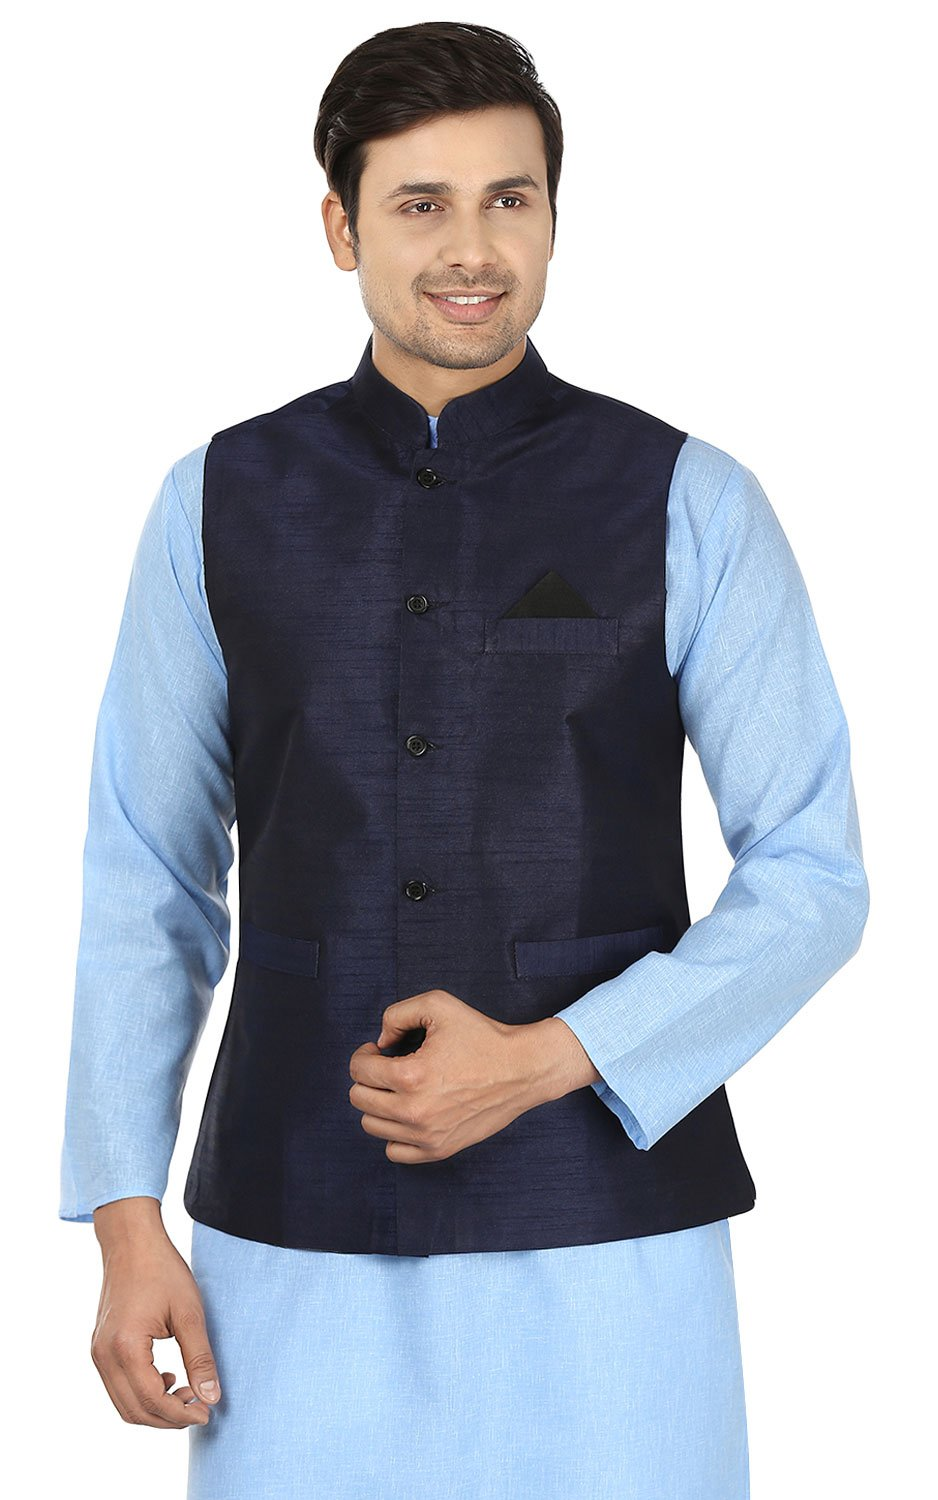 Maple Clothing Men's Silk Traditional Indian Nehru Jacket Sleeve Less Waistcoat (Blue, L)